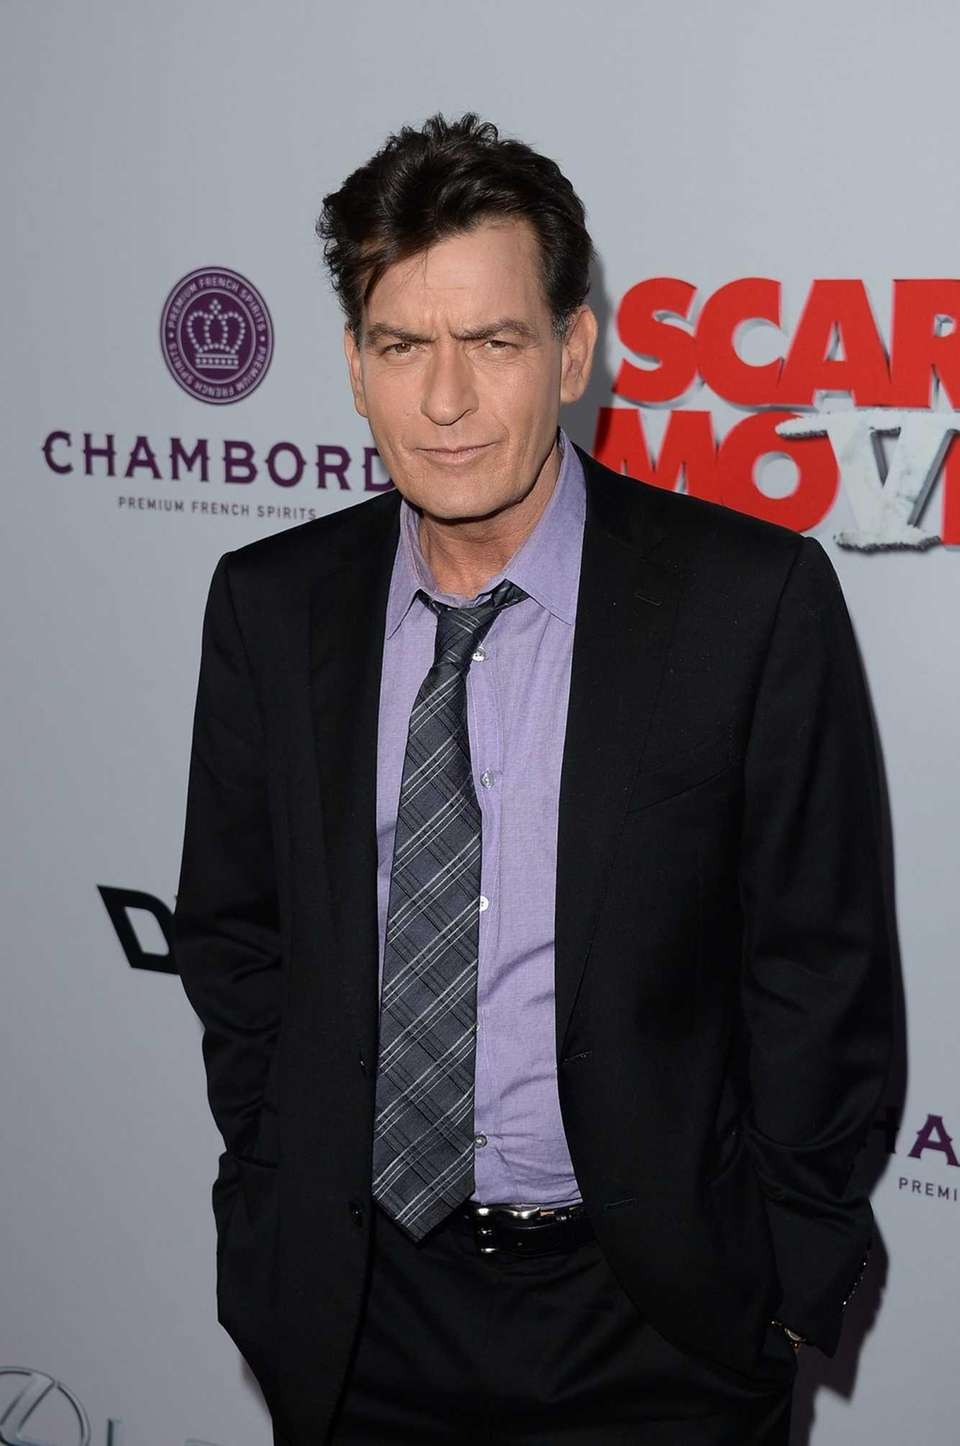 Charlie Sheen was born on Sept. 3, 1965.